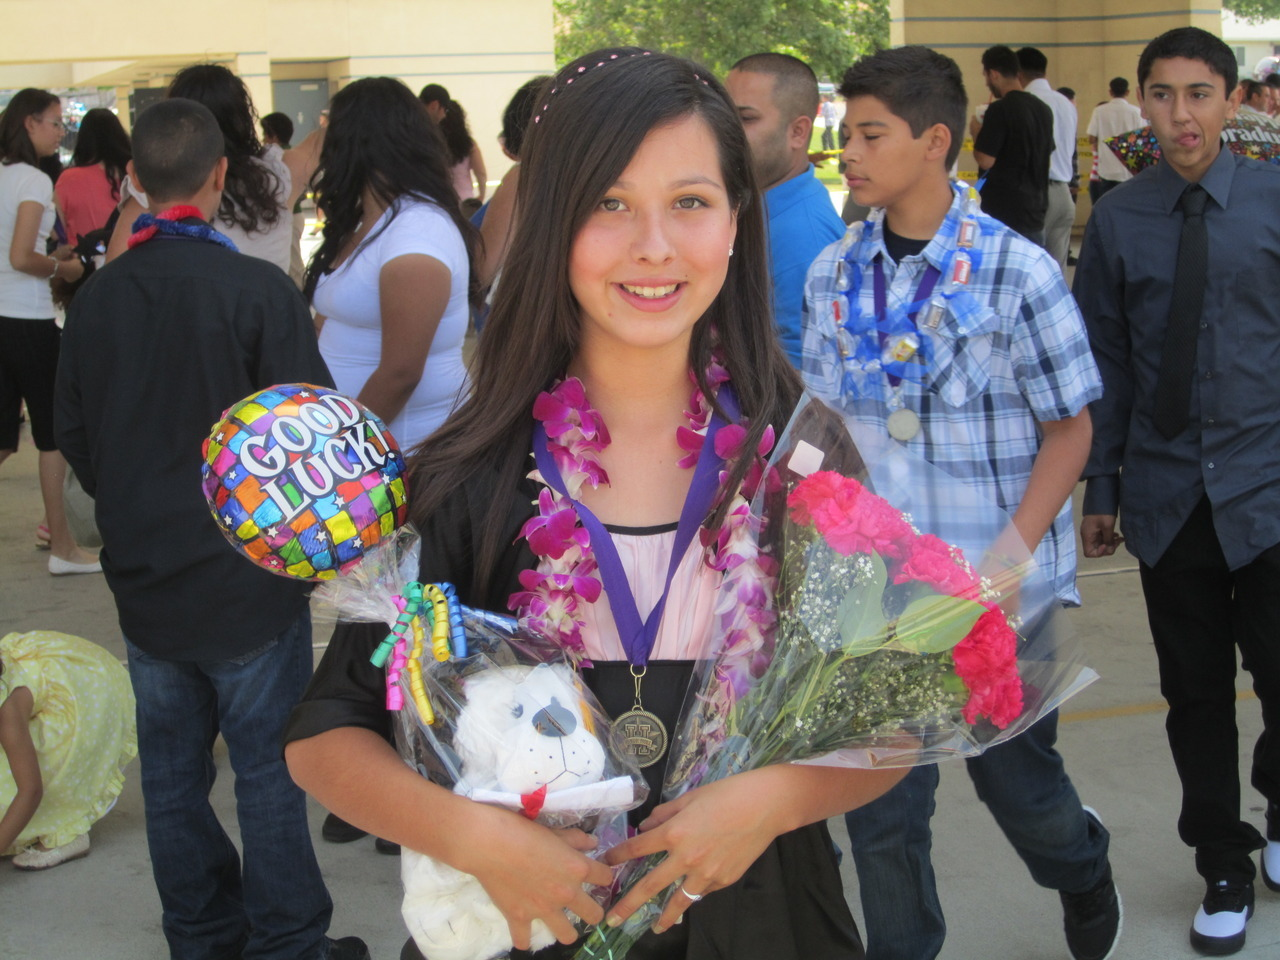 eighth grade graduation…omg the years go by soo fast. I cant believe I'm a sophmore now! :)